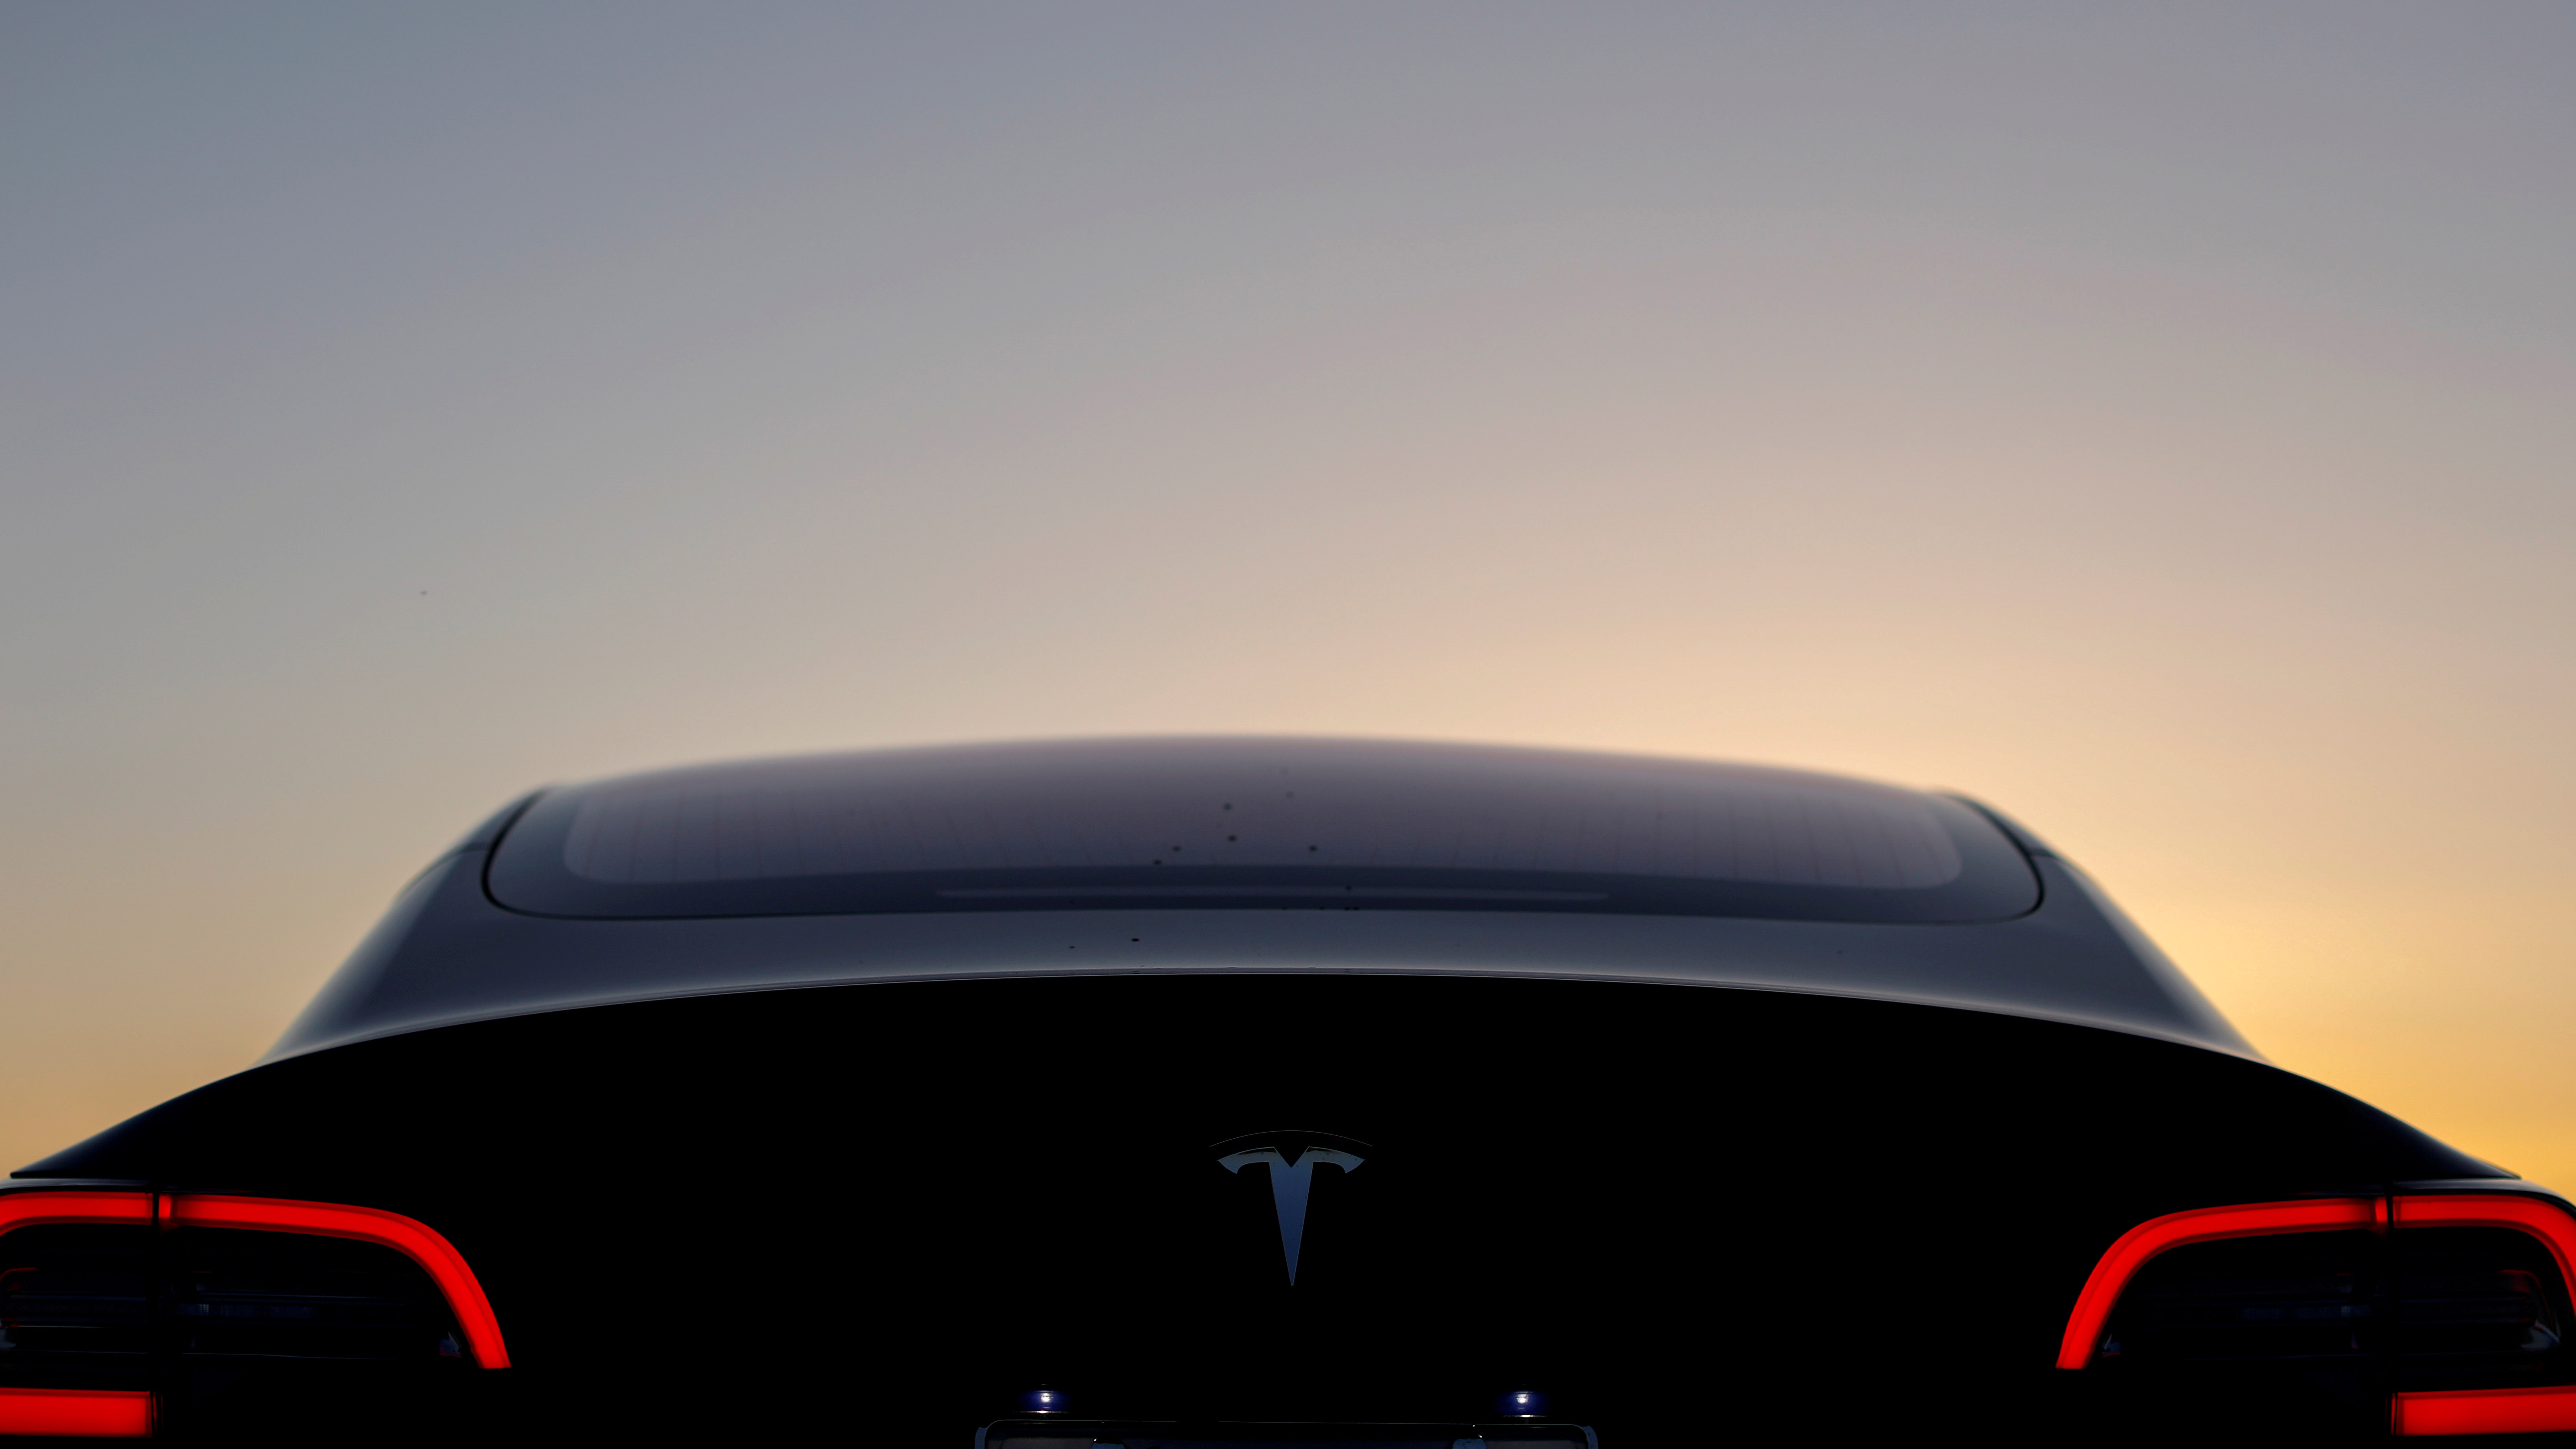 FILE PHOTO: A 2018 Tesla Model 3 electric vehicle is shown in this photo illustration taken in Cardiff, California, U.S., June 1, 2018.  REUTERS/Mike Blake/File Photo - RC14CA00E2F0